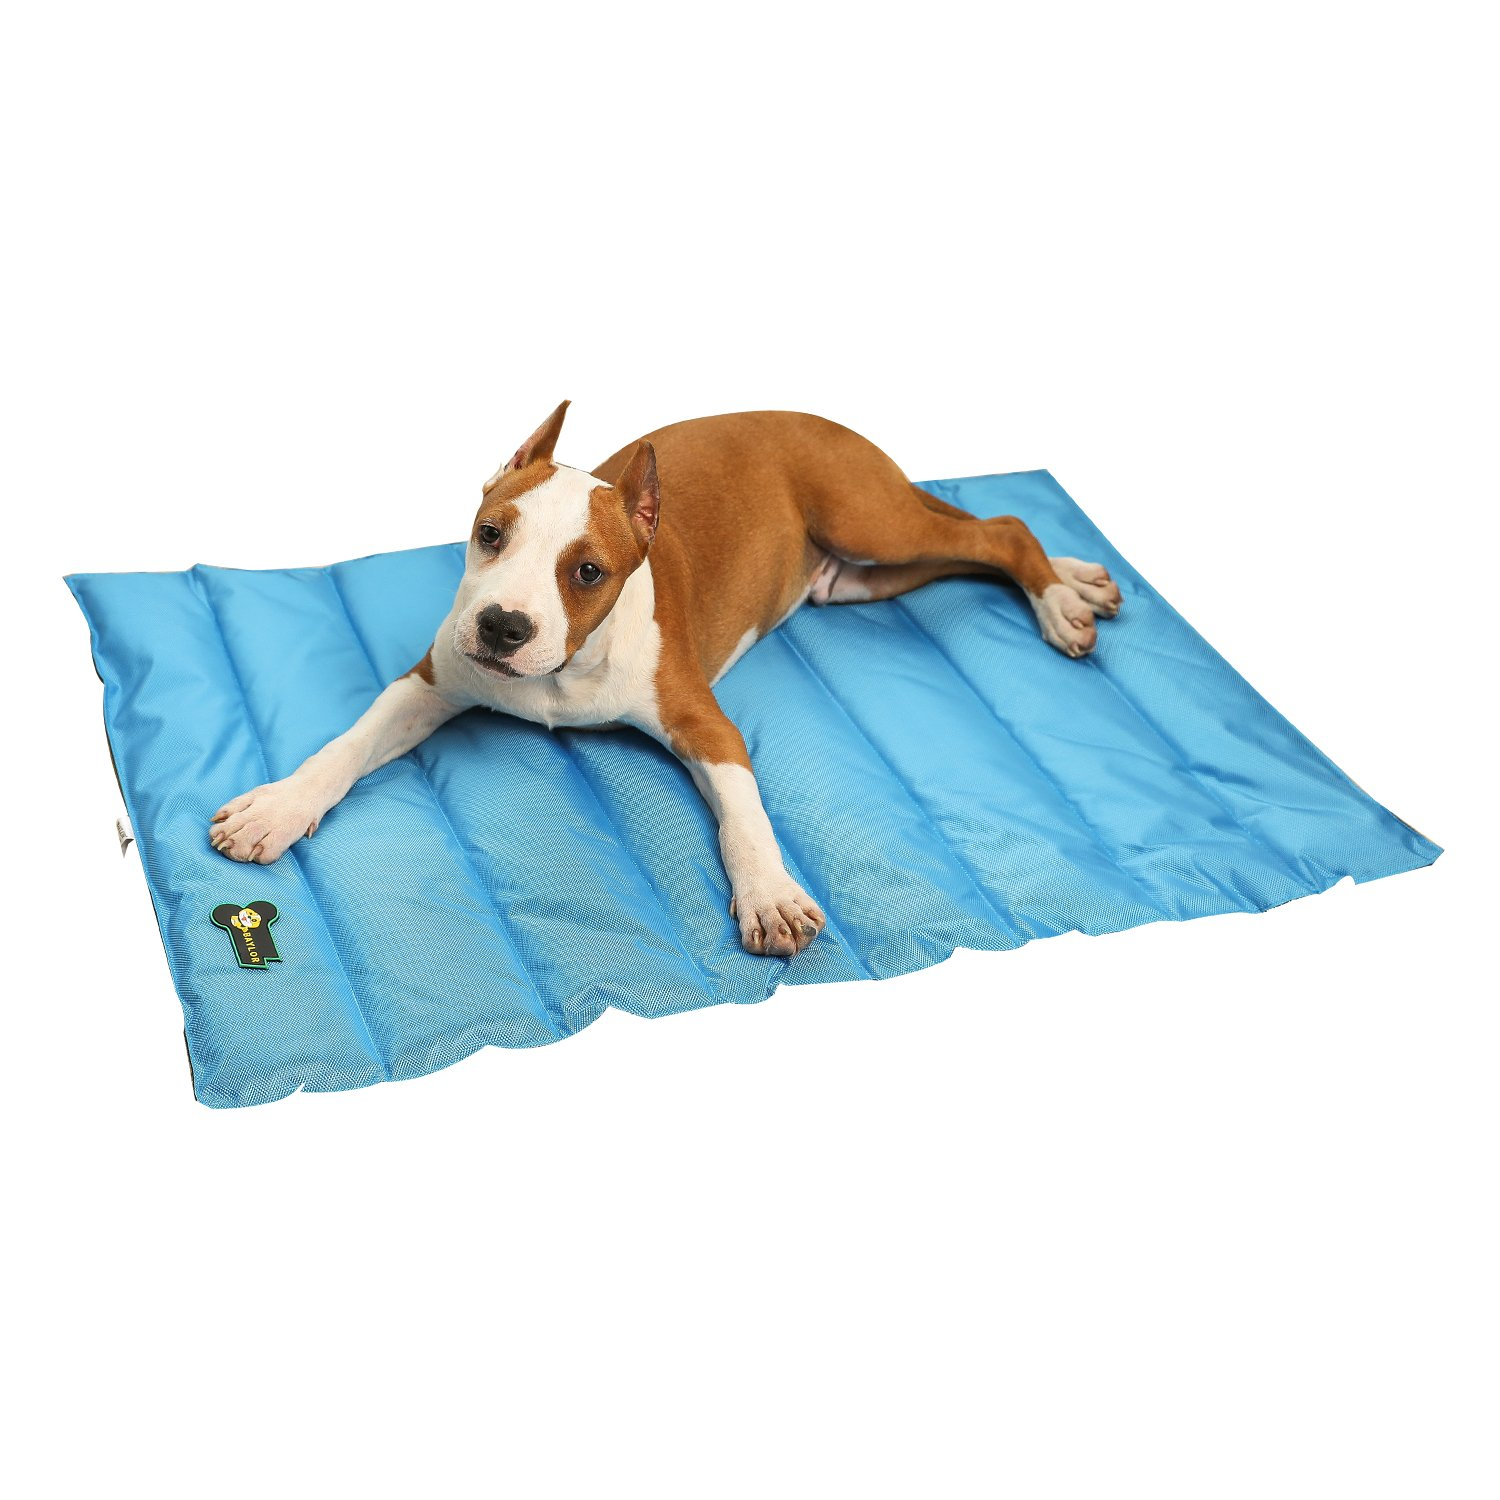 FORNO Pet mat, Collapsible Cooling Pet Pad for Summer, for Small and Medium Sized Dogs,Animals